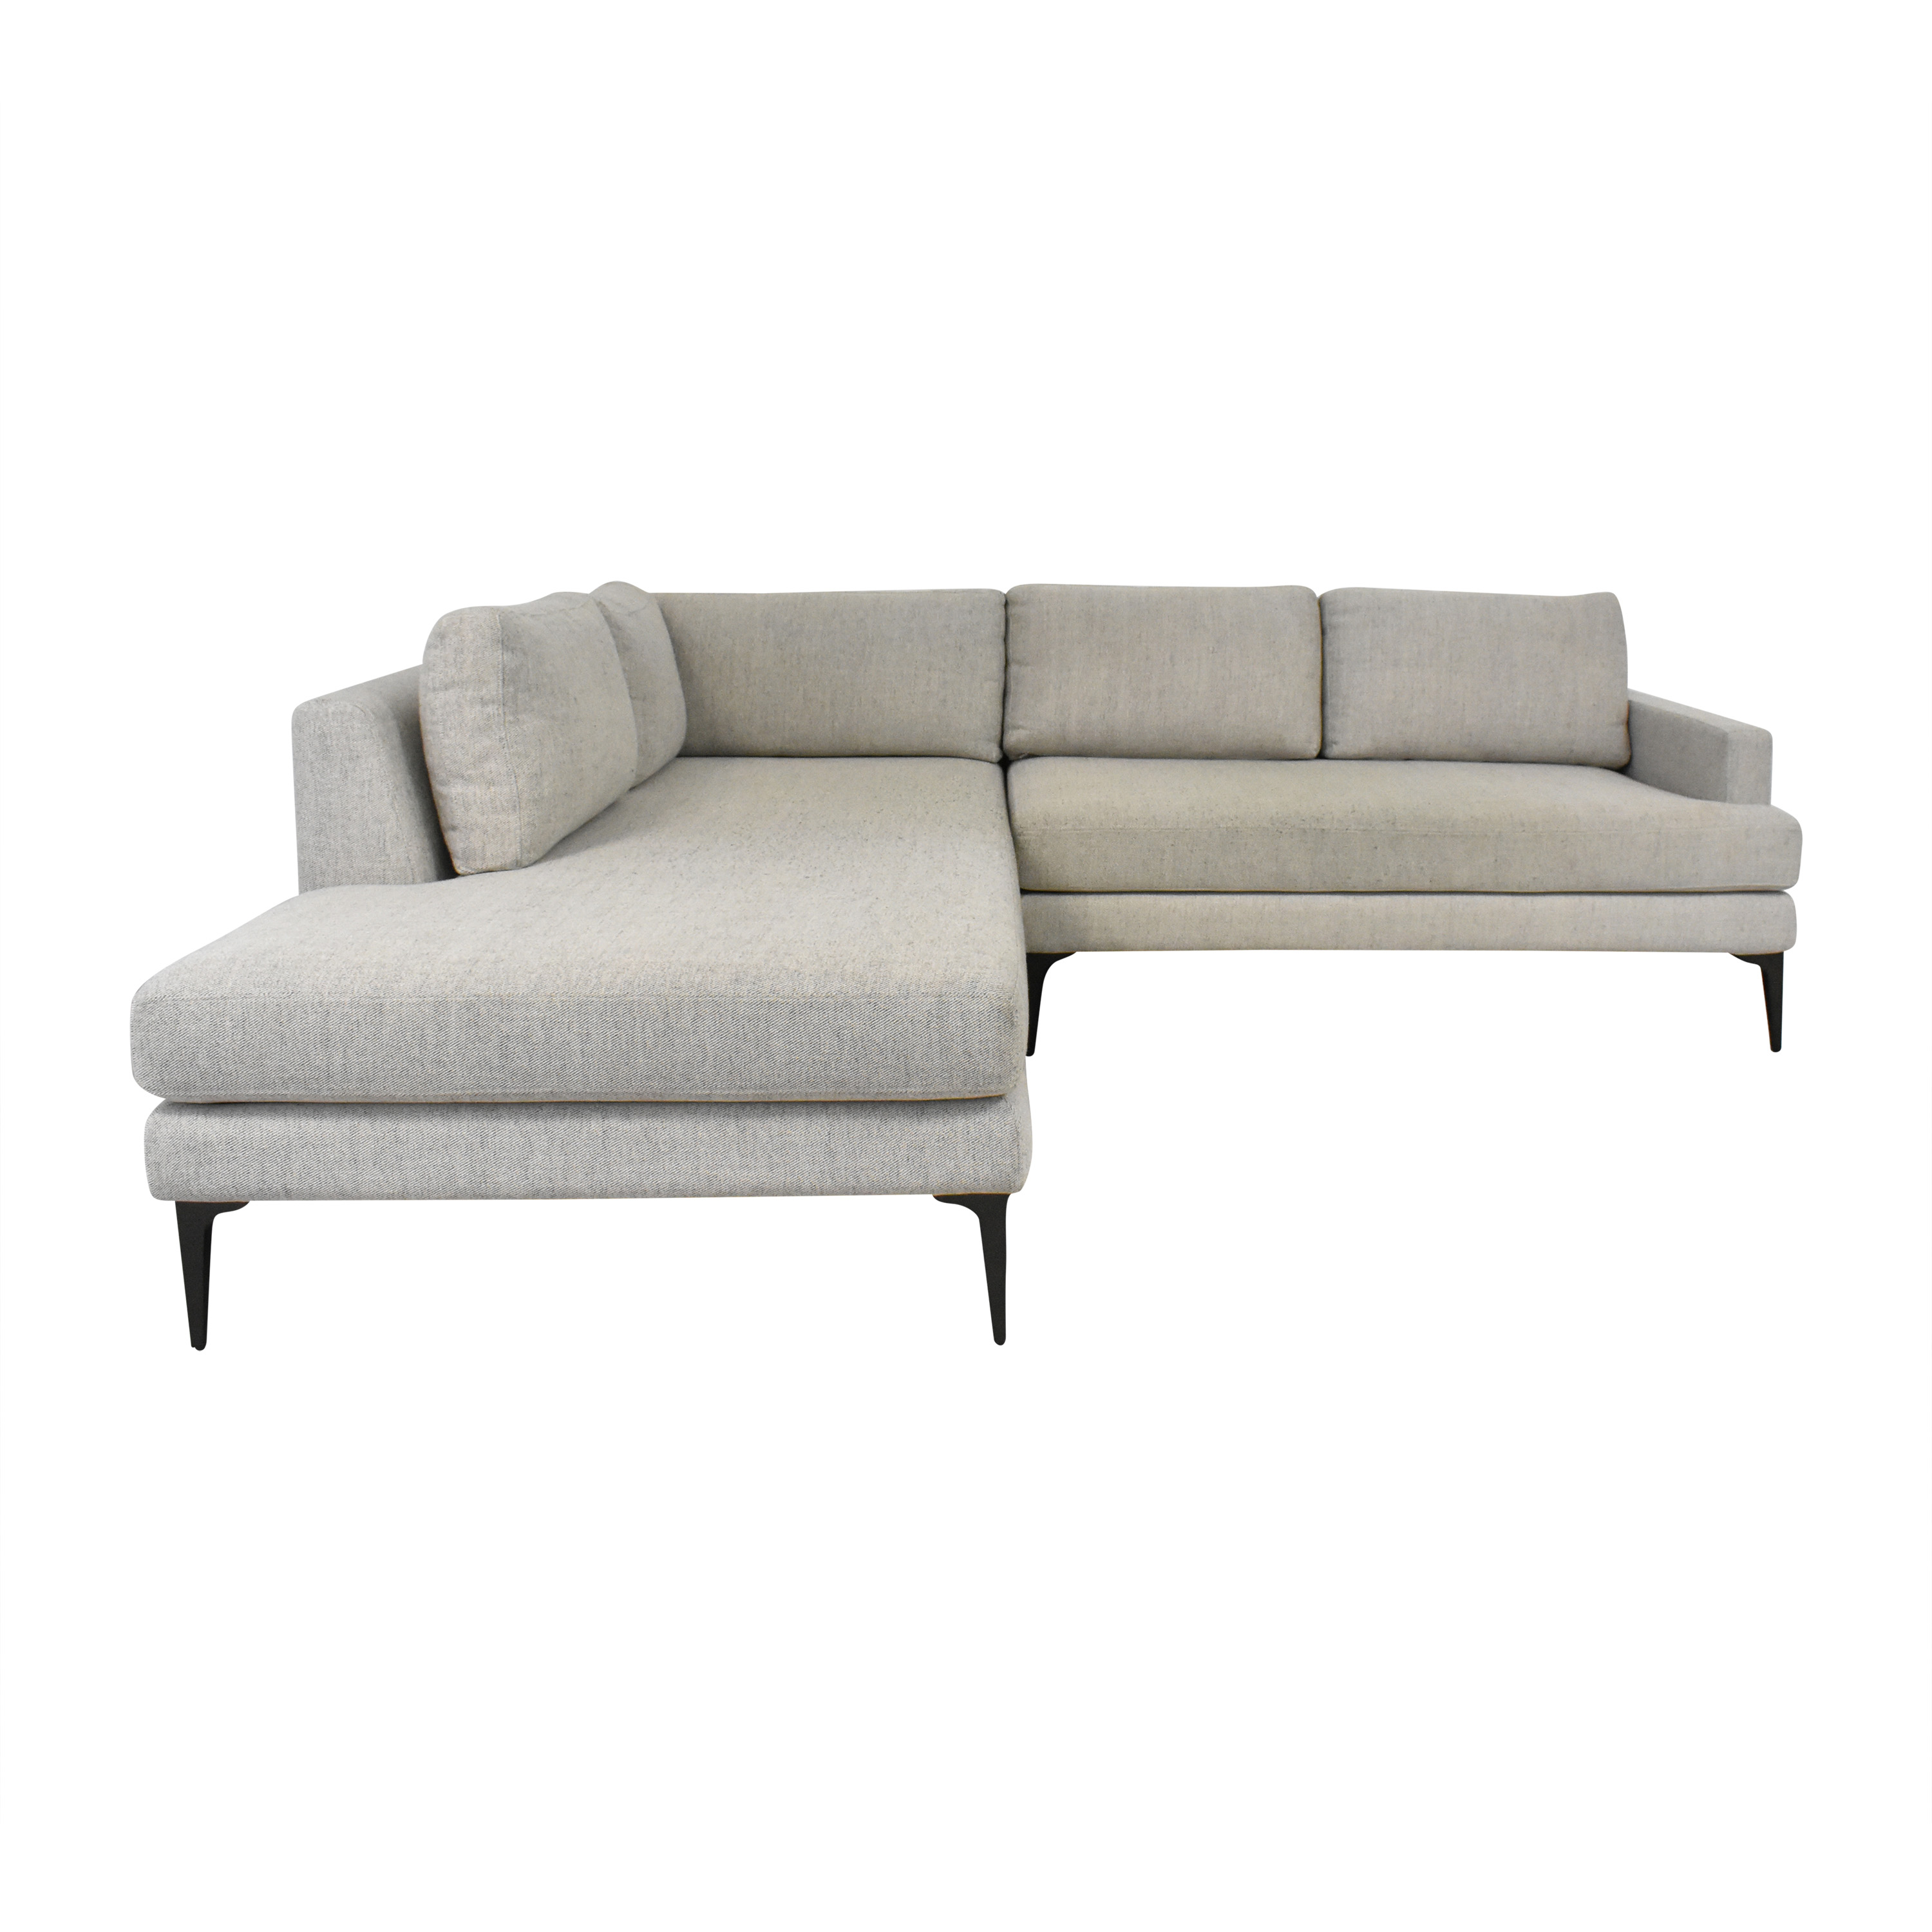 West Elm West Elm Andes Two Piece Terminal Chaise Sectional price